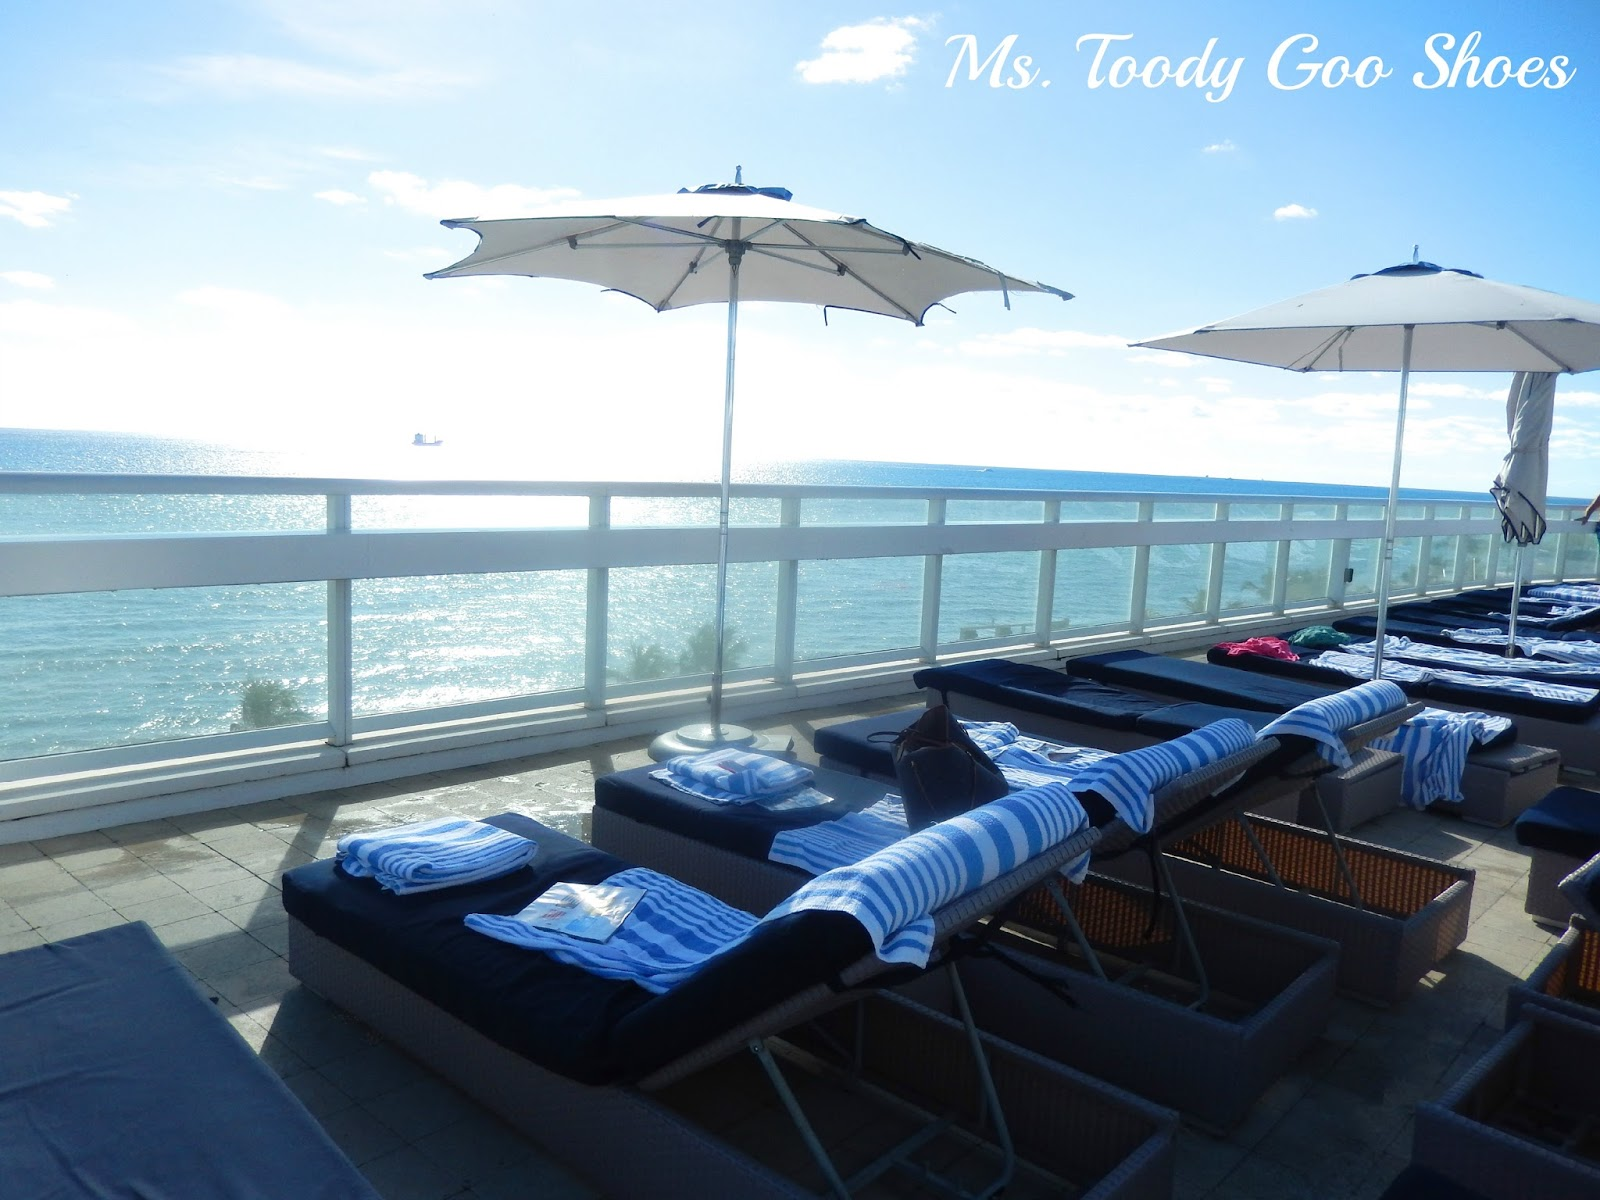 W Hotel Ft. Lauderdale, Florida --- by Ms. Toody Goo Shoes